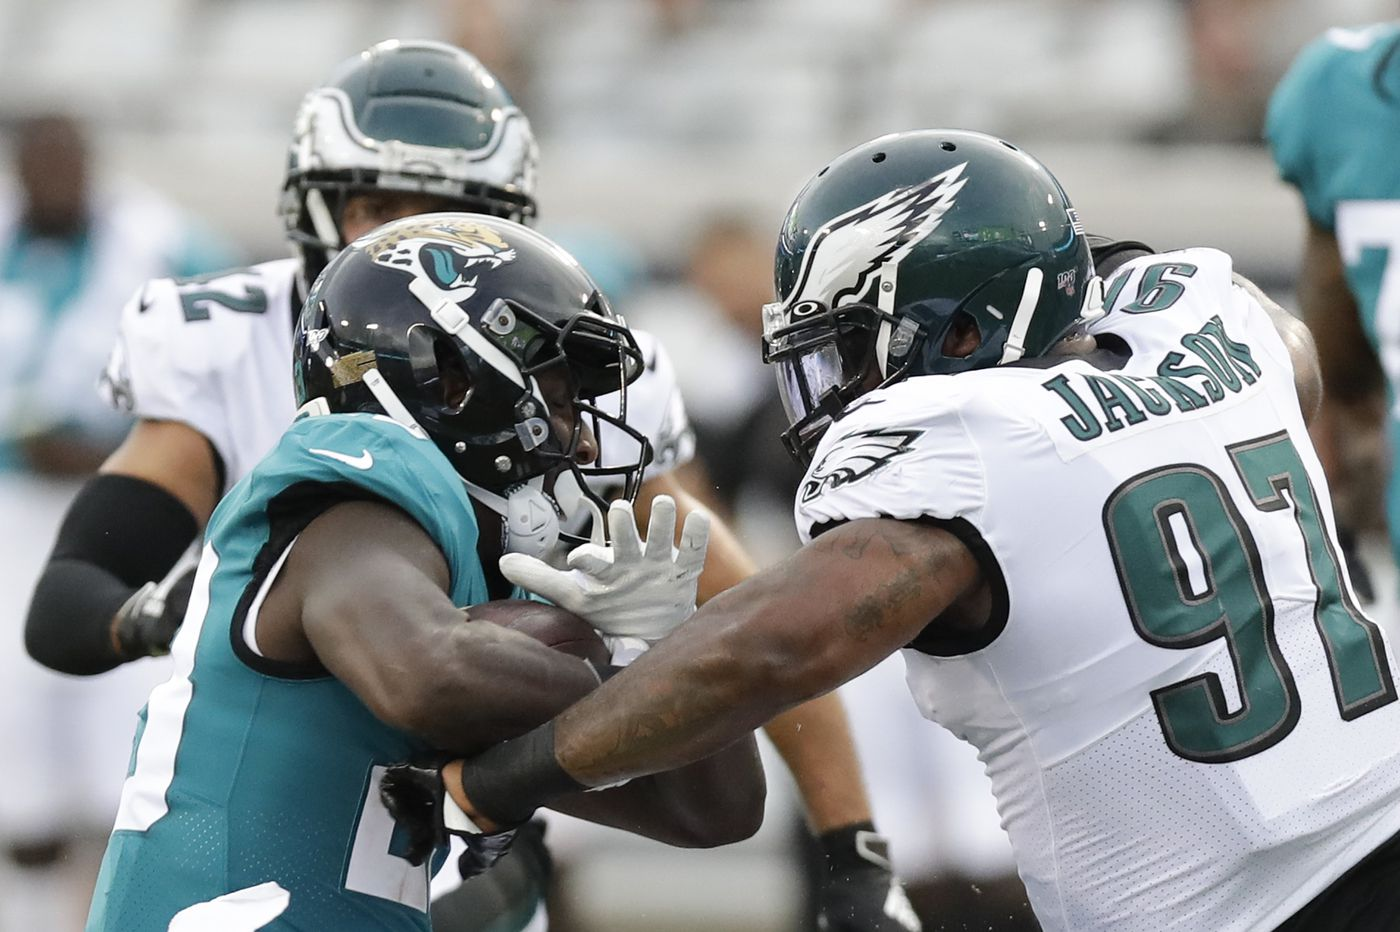 For starters, you didn't see many on offense for the Eagles